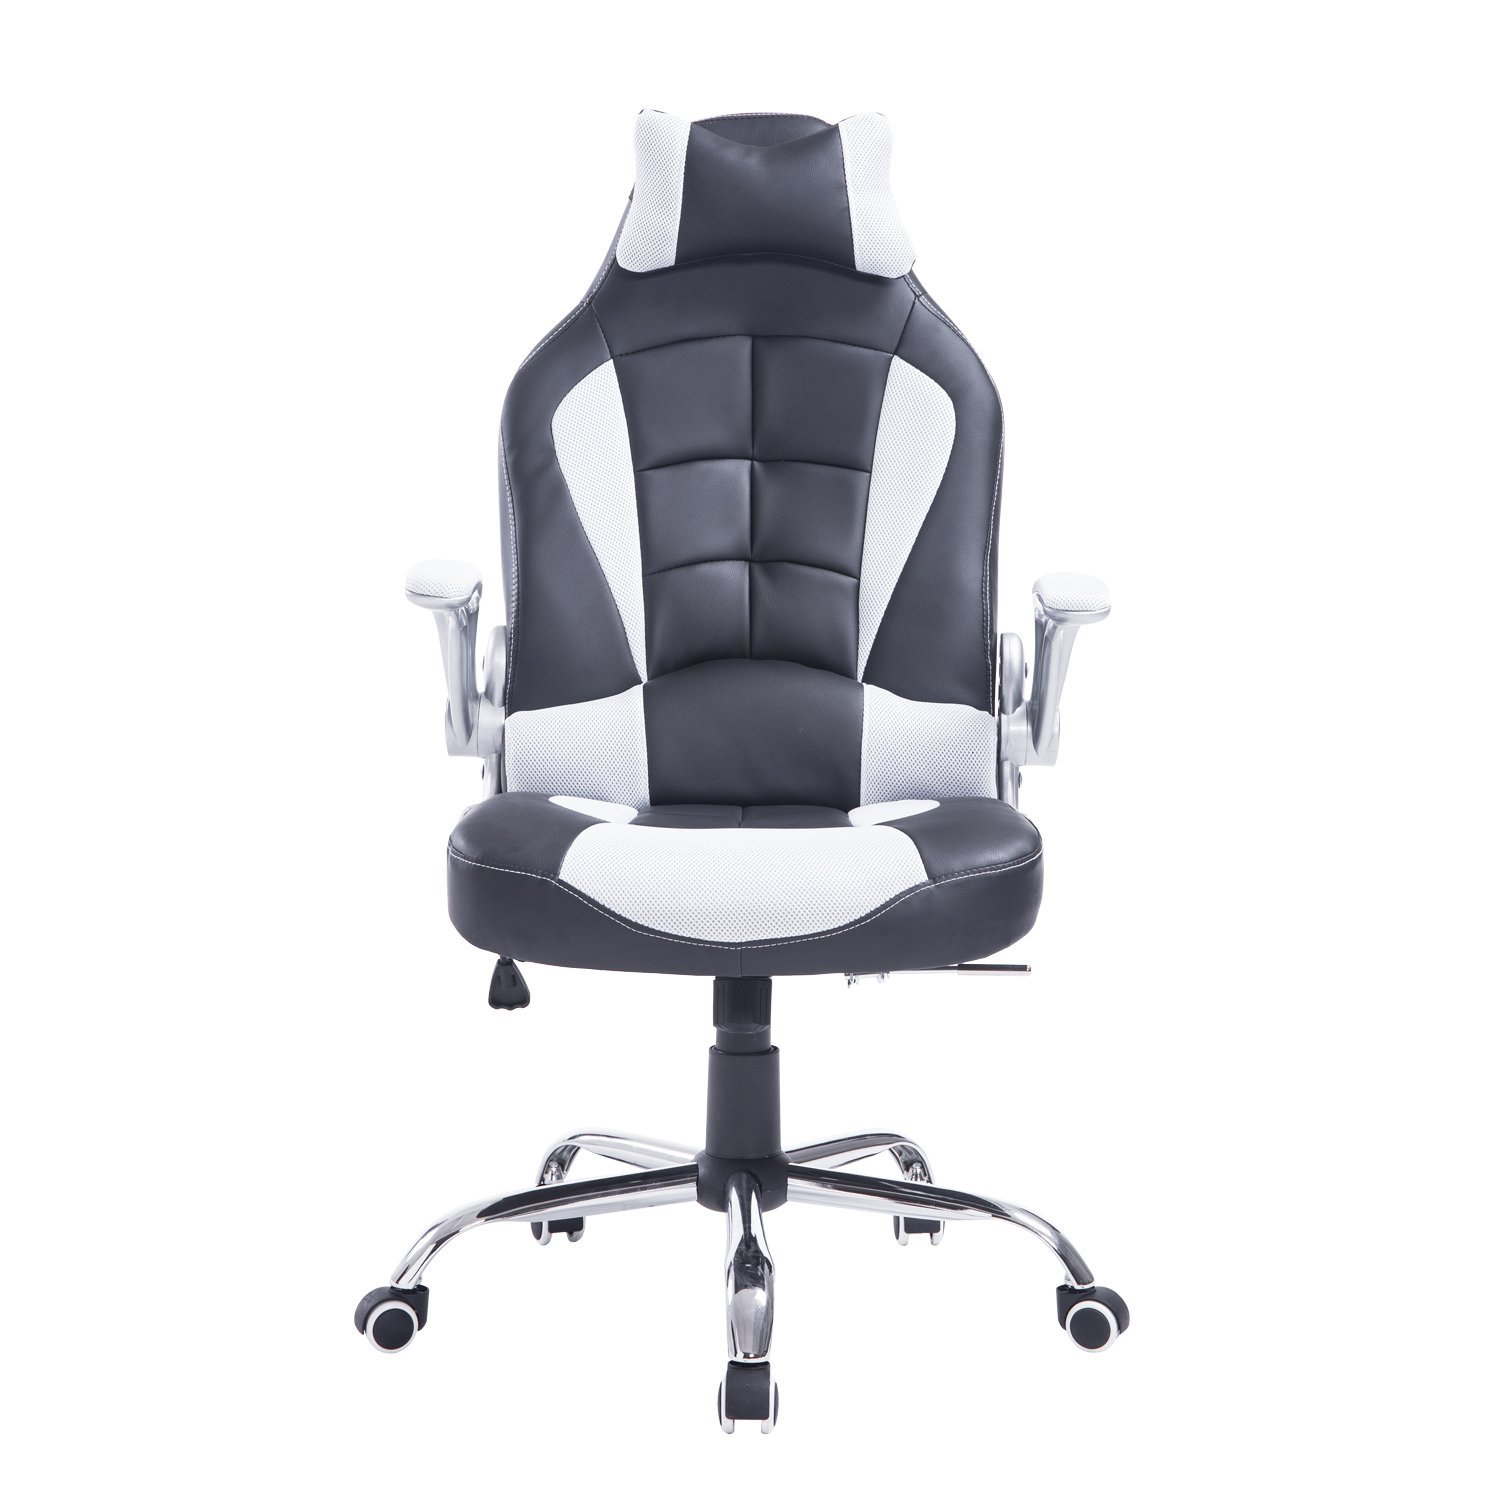 fauteuil gamer solide robuste confortable